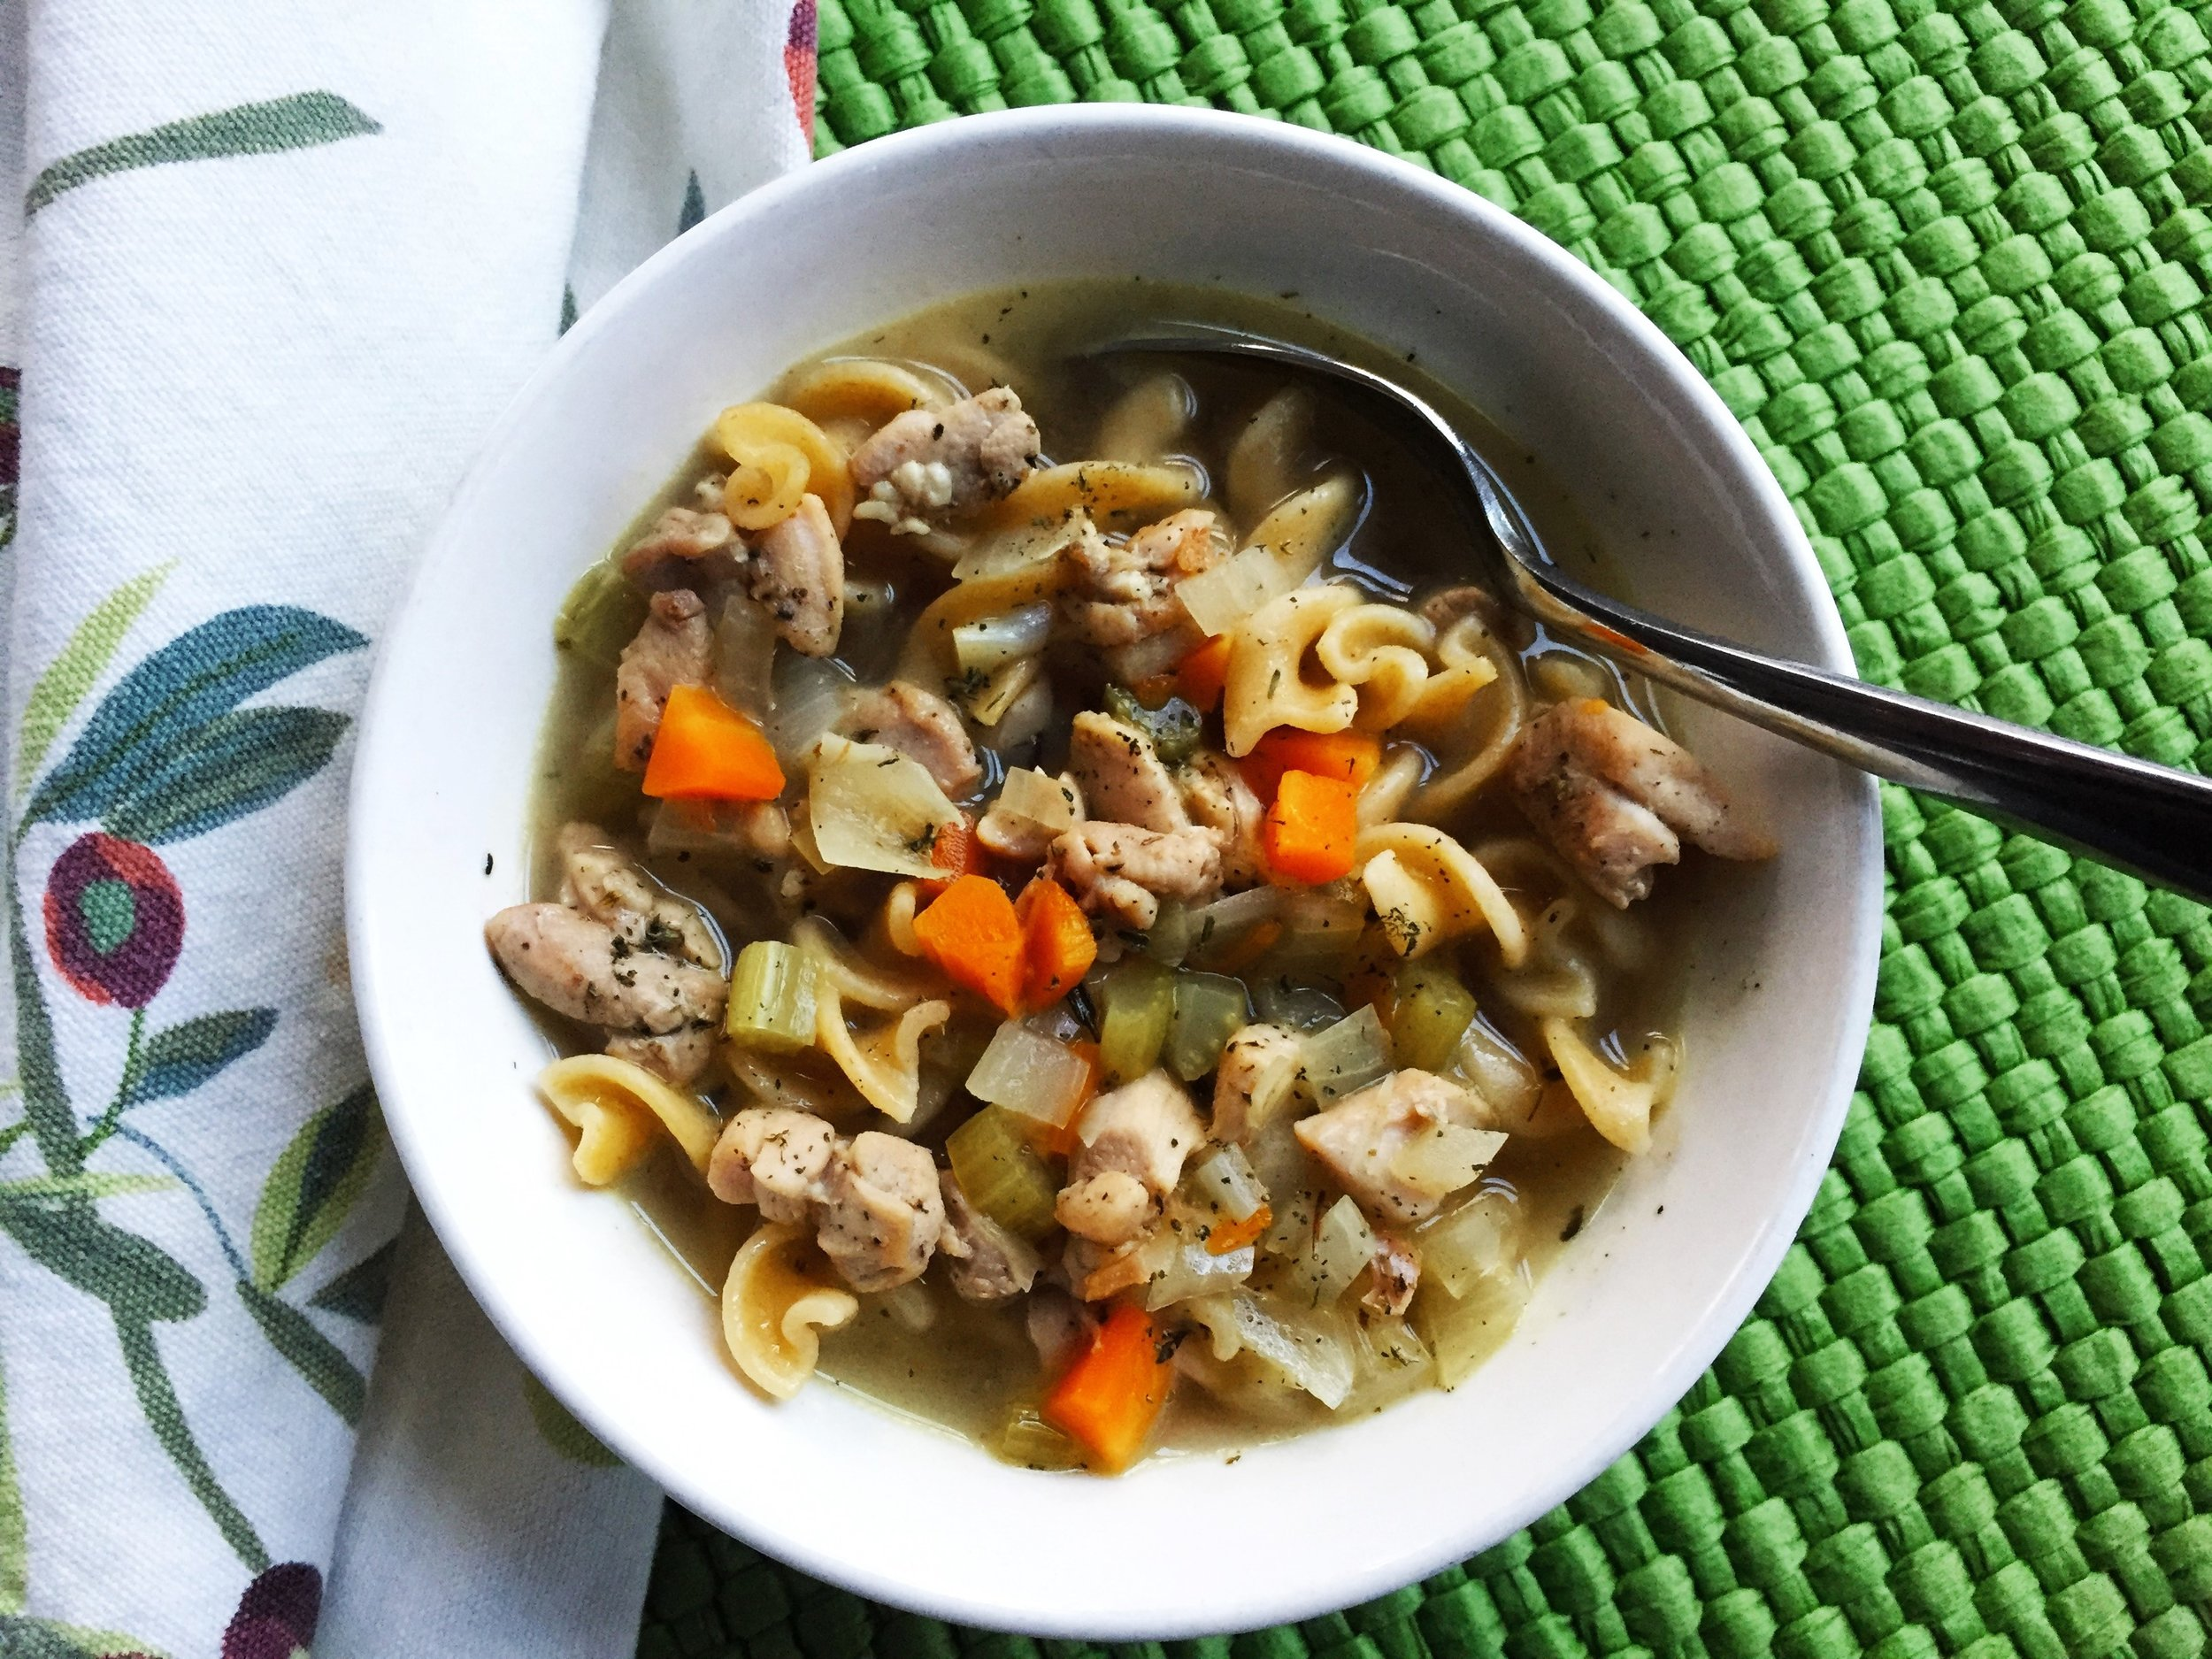 Chicken Noodle Soup made in the Adventure Kitchen.